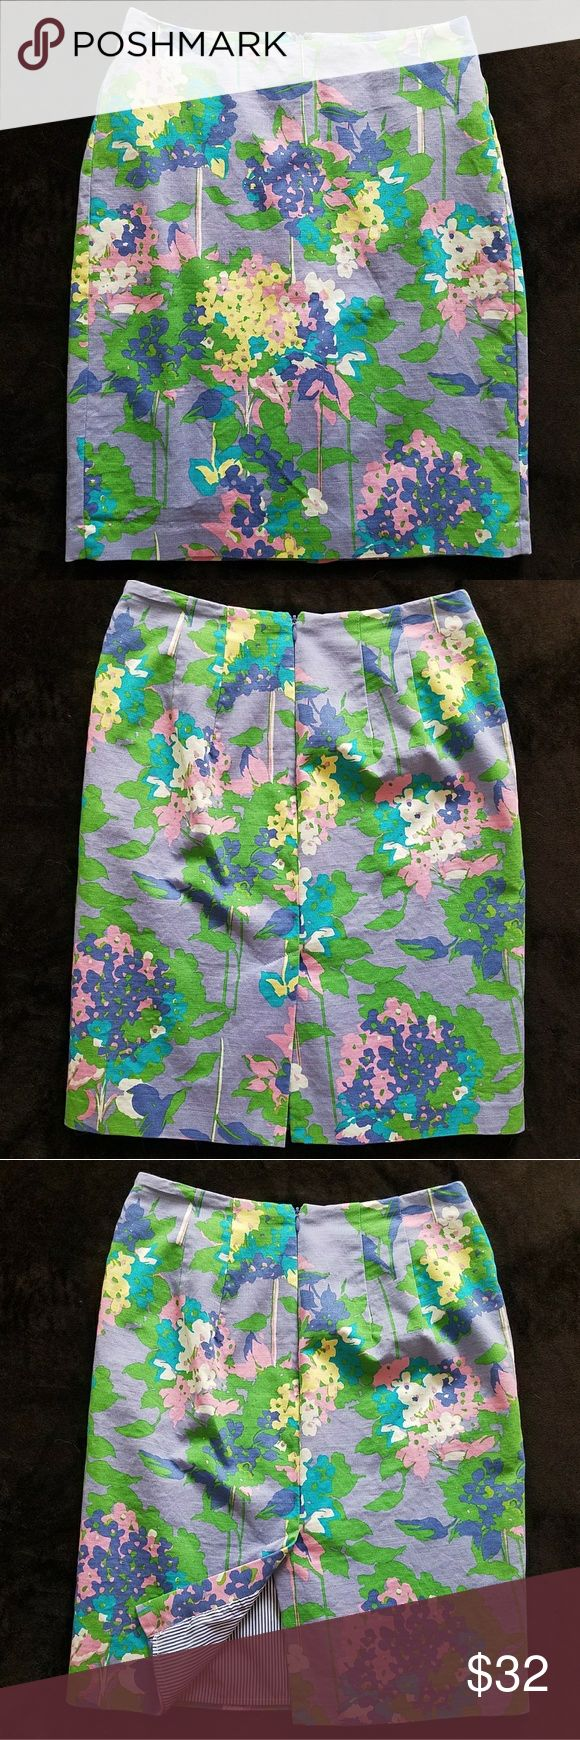 """Tommy Hilfiger Floral Pencil Skirt With spring just around the corner, this Tommy Hilfiger Floral Pencil Skirt is perfect! Like New condition. Fully lined with a pretty stripe lining.  Approximate measurements while laying flat-  Width: 18""""  Length: 20.5/21"""" Tommy Hilfiger Skirts Pencil"""